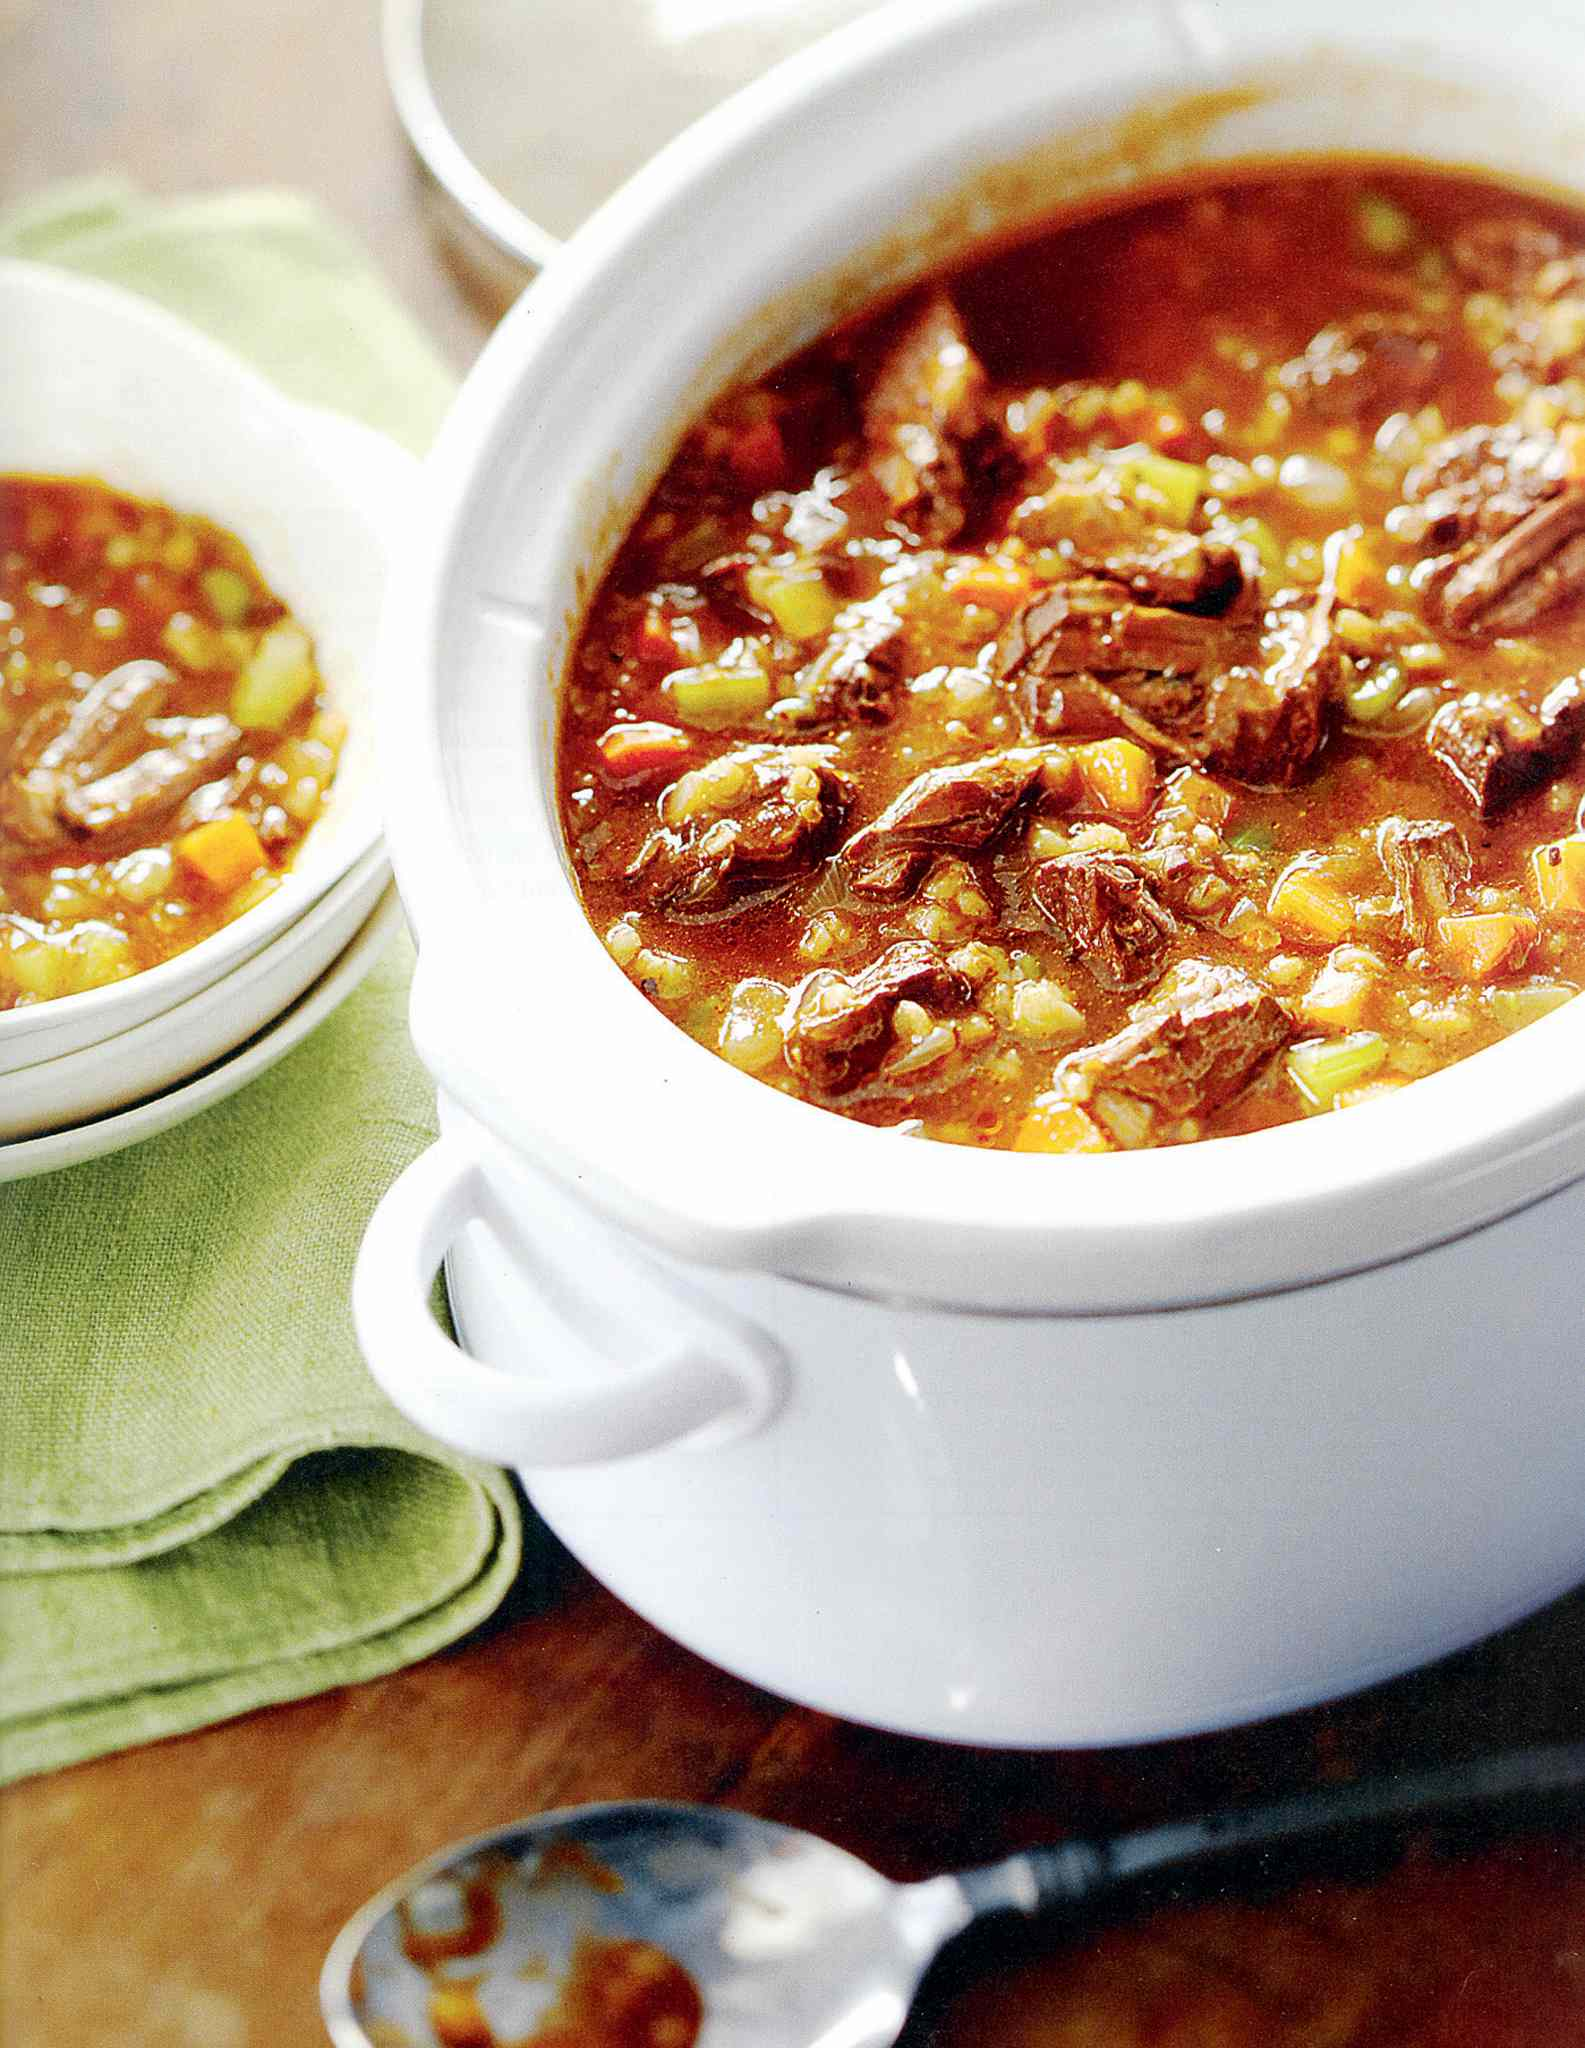 With improved slow-cooker recipes, you don't have to sacrifice quality for convenience